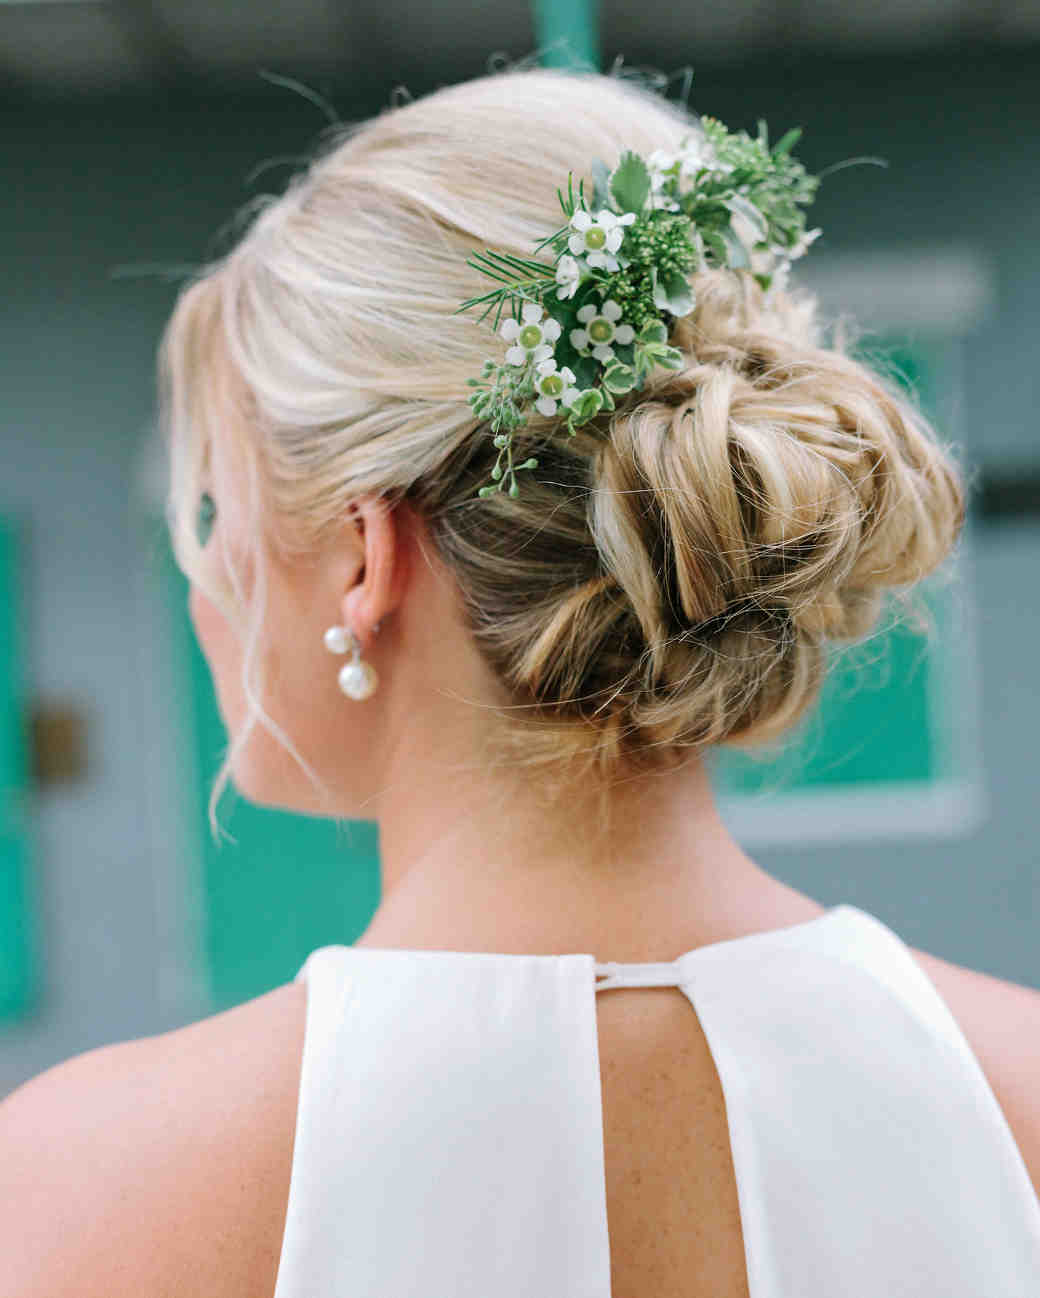 kate austin wedding flowercomb hair